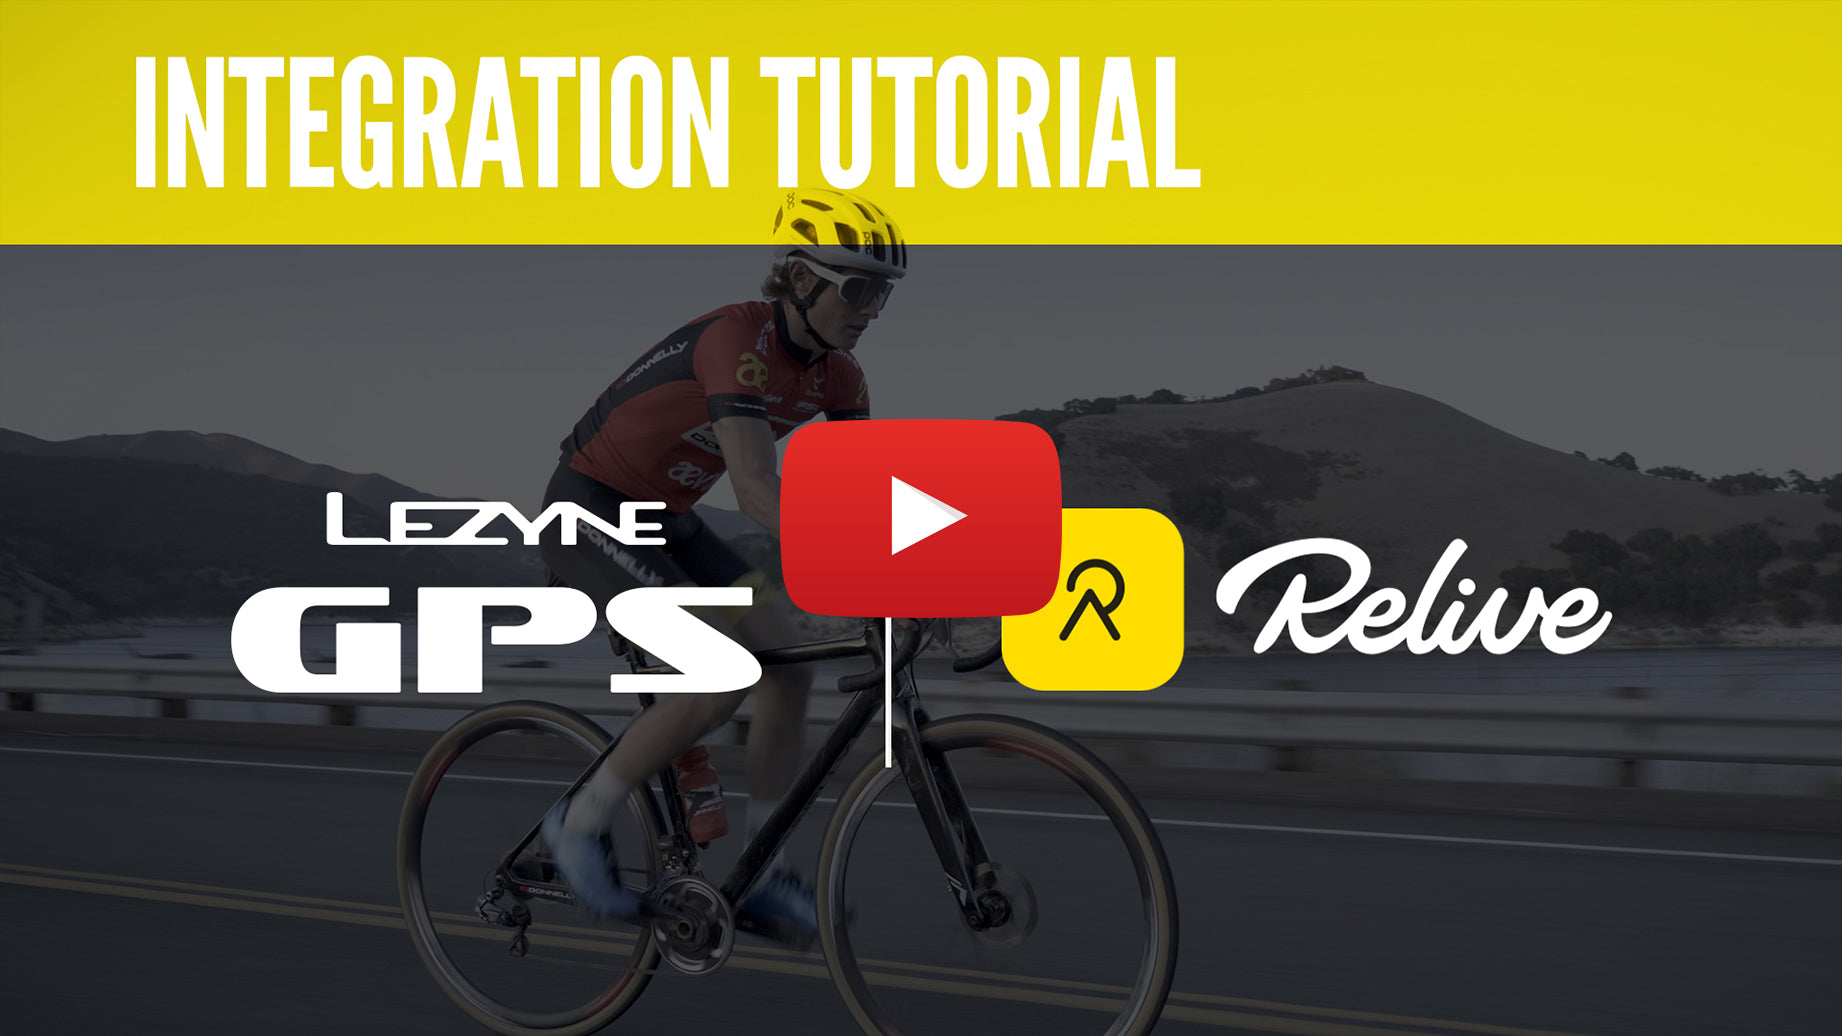 Relive and Lezyne Integration